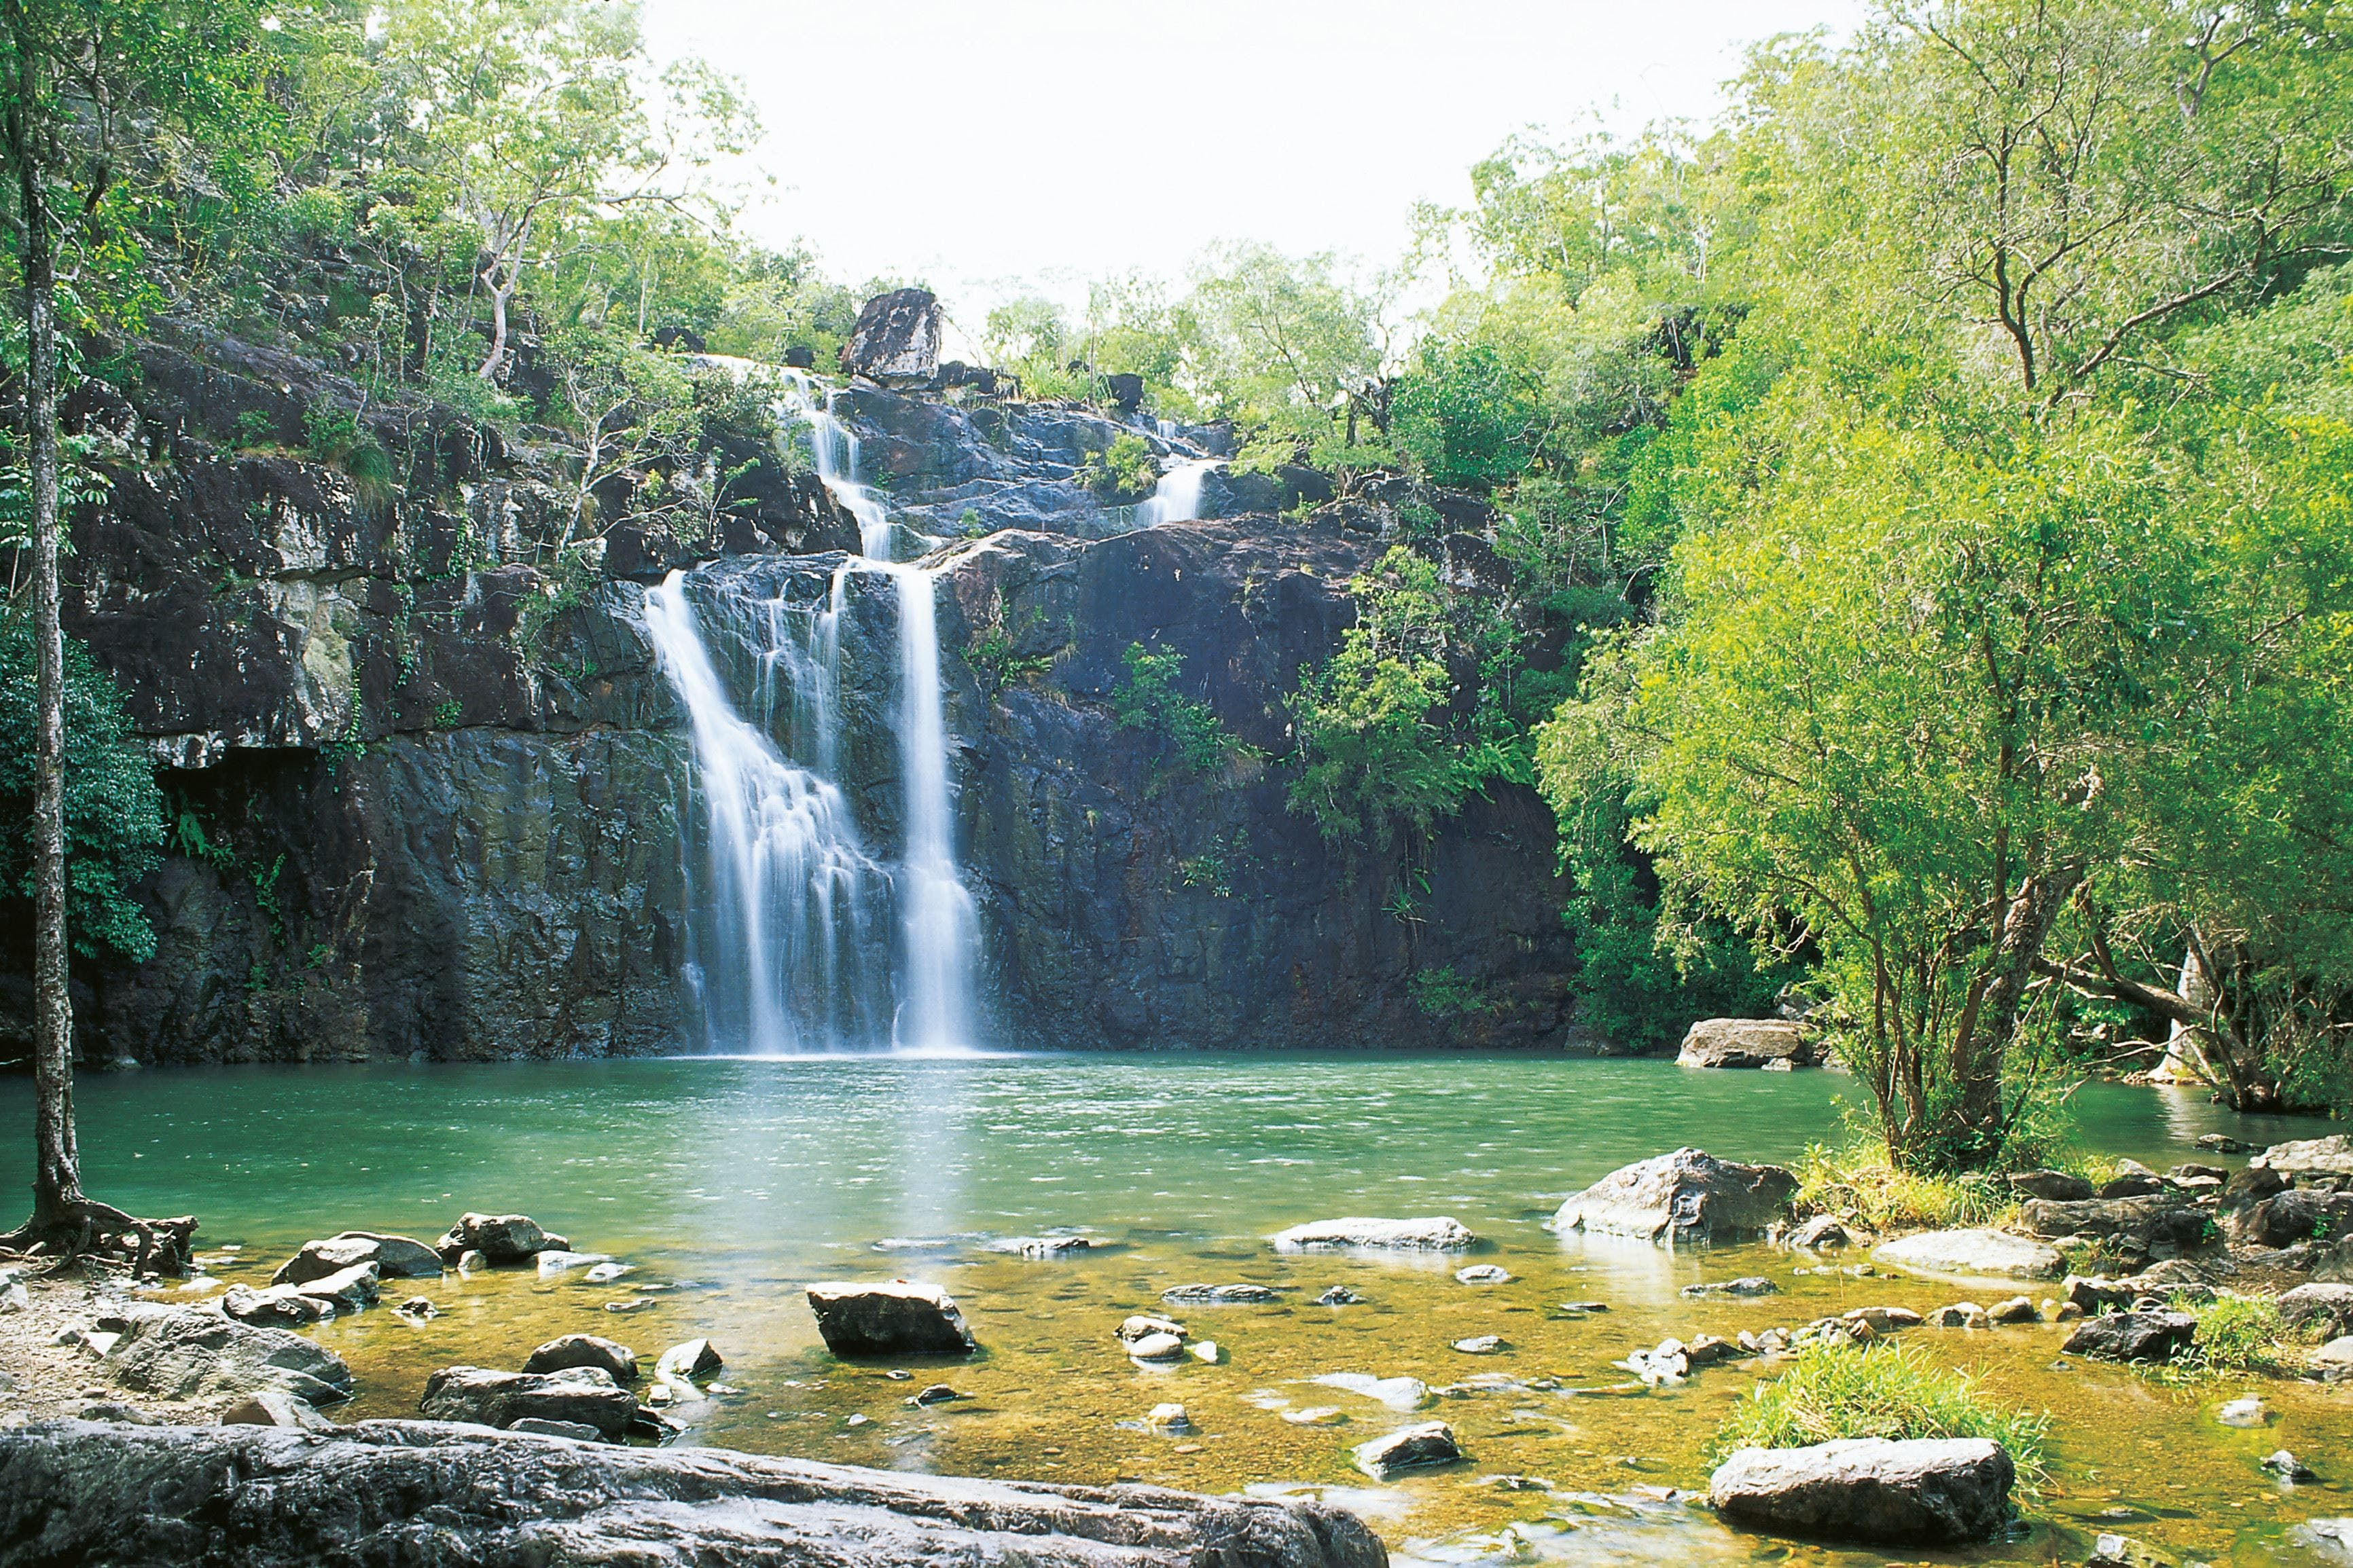 Cedar Creek Falls - Accommodation Gold Coast